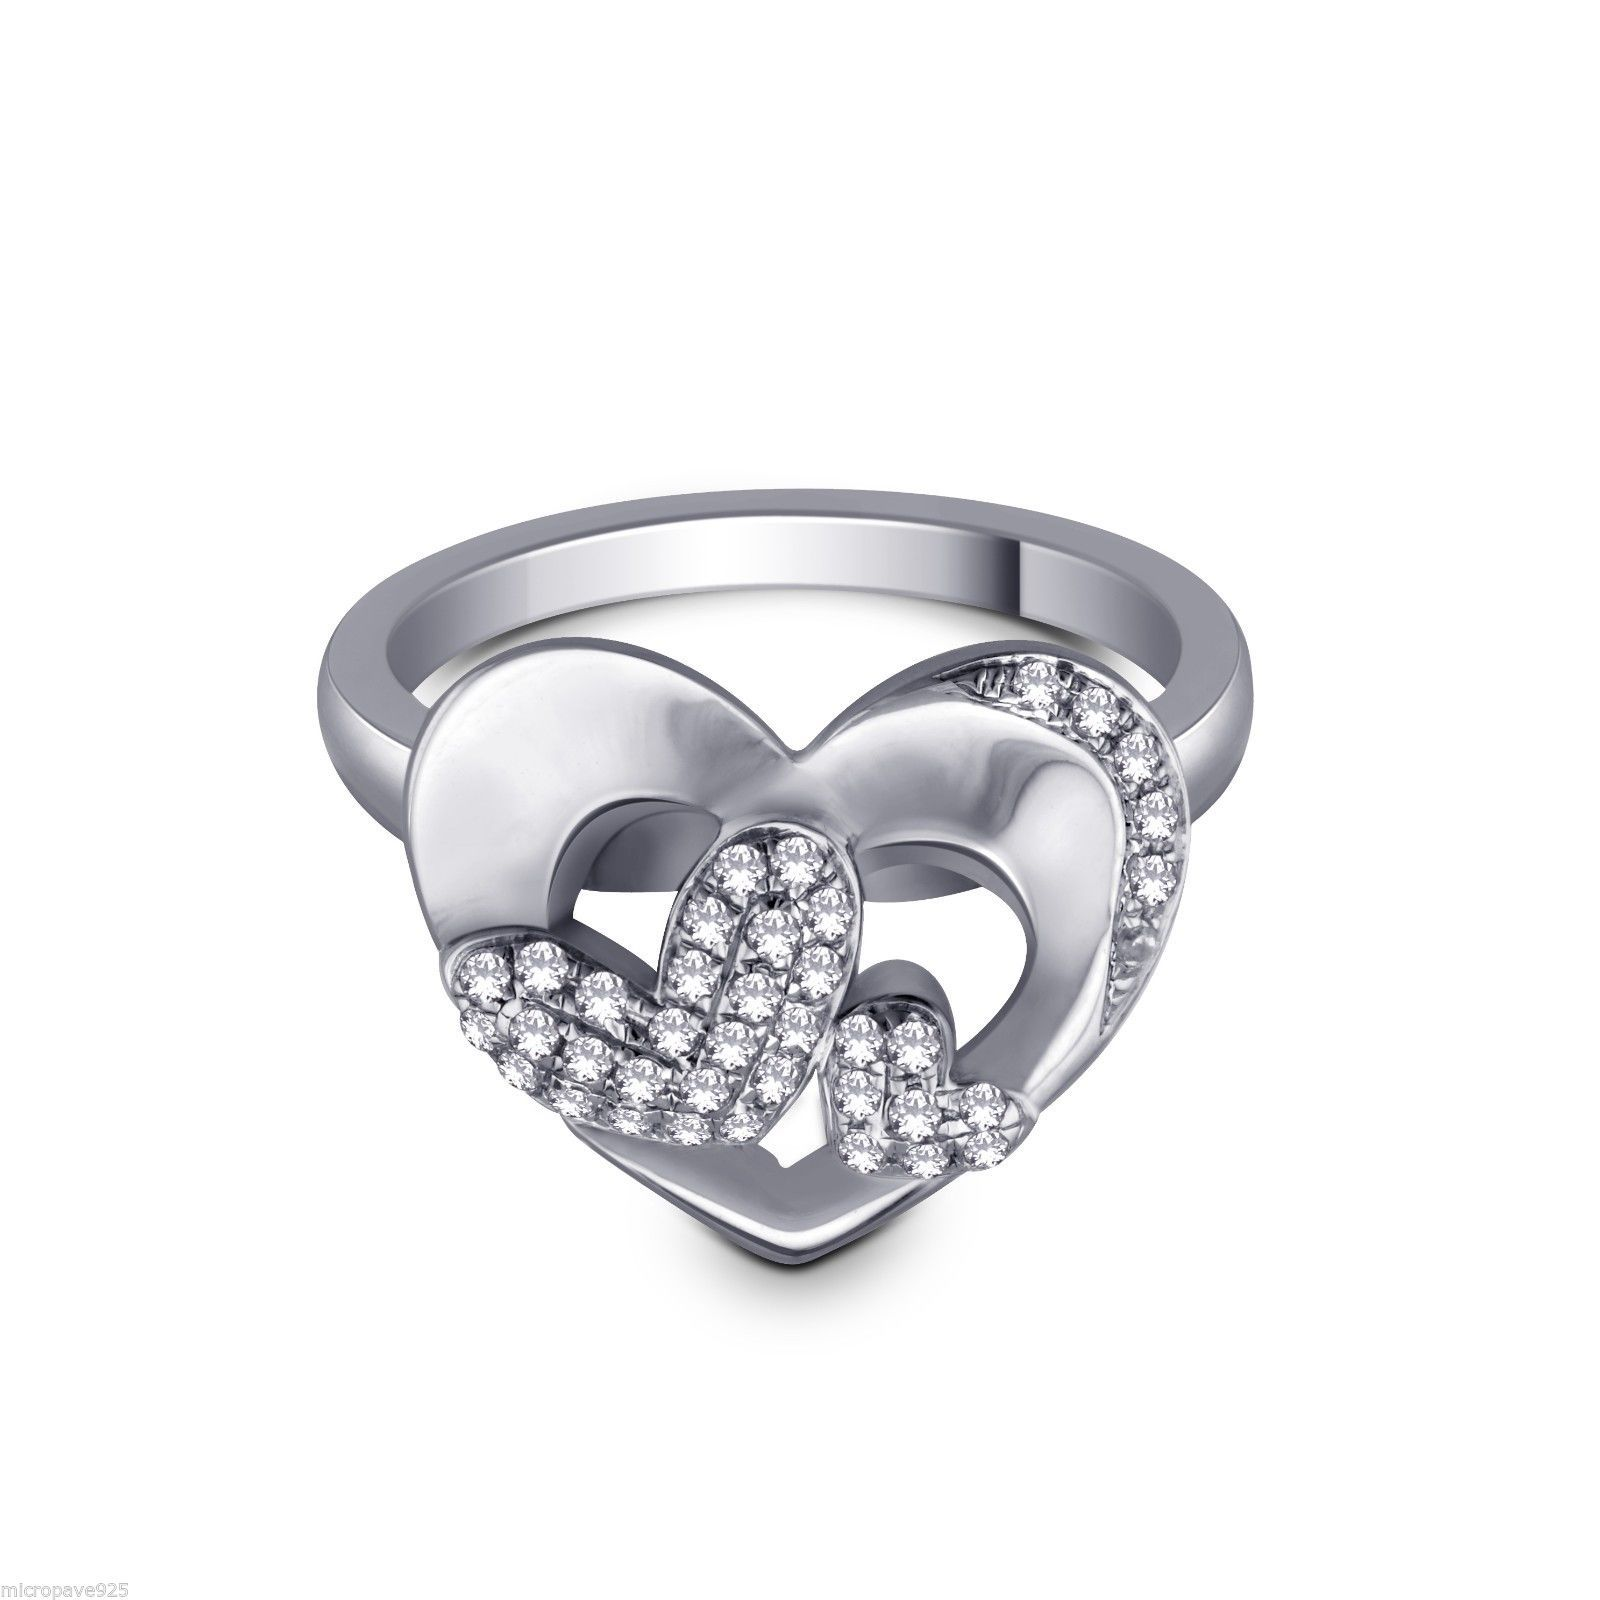 Heart Design 925 Sterling Silver Ring With Pave Pave Set Cubic Zirconia Stones